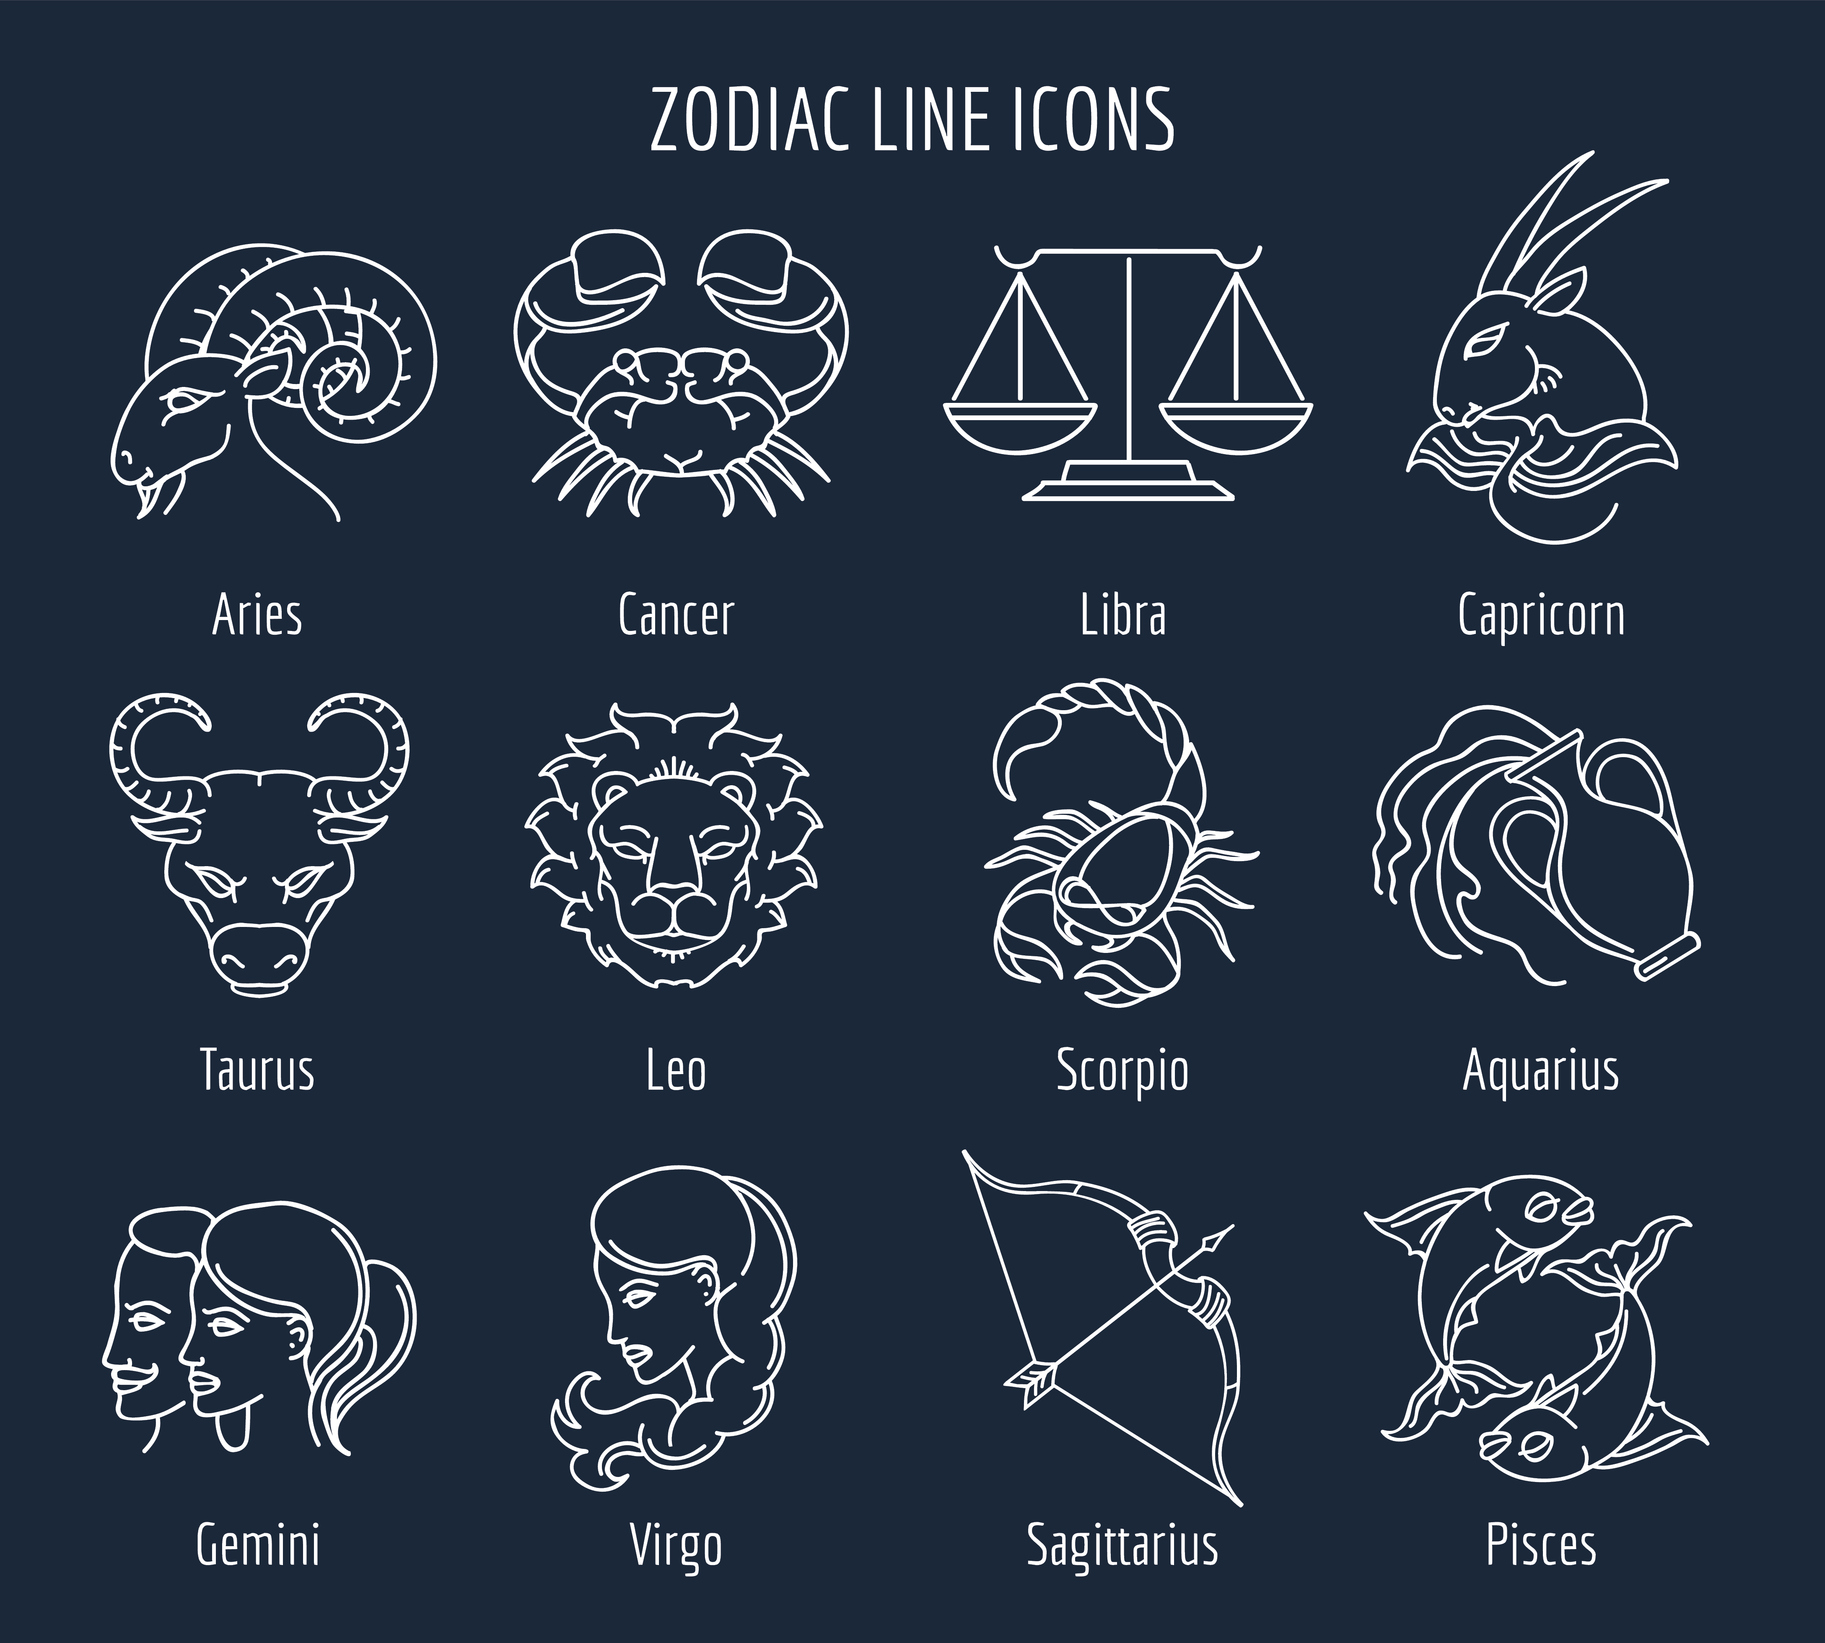 Zodiac line icons. Zodiac signs in thin line style